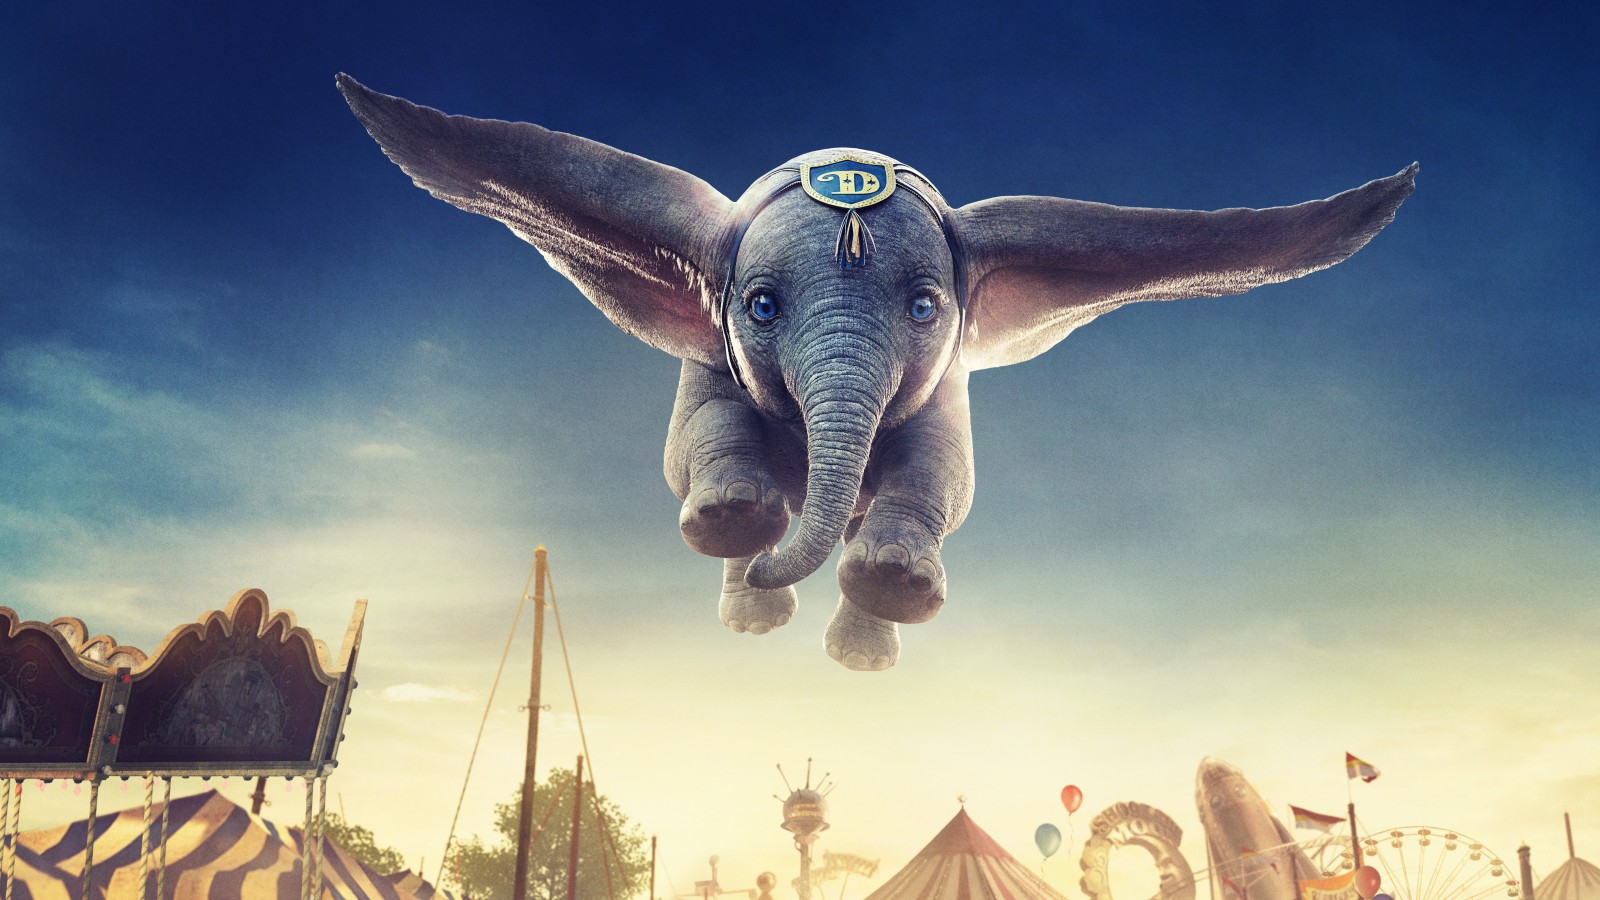 Download Wallpaper 3d Android Dumbo 4k 8k Wallpapers Hd Wallpapers Id 27699